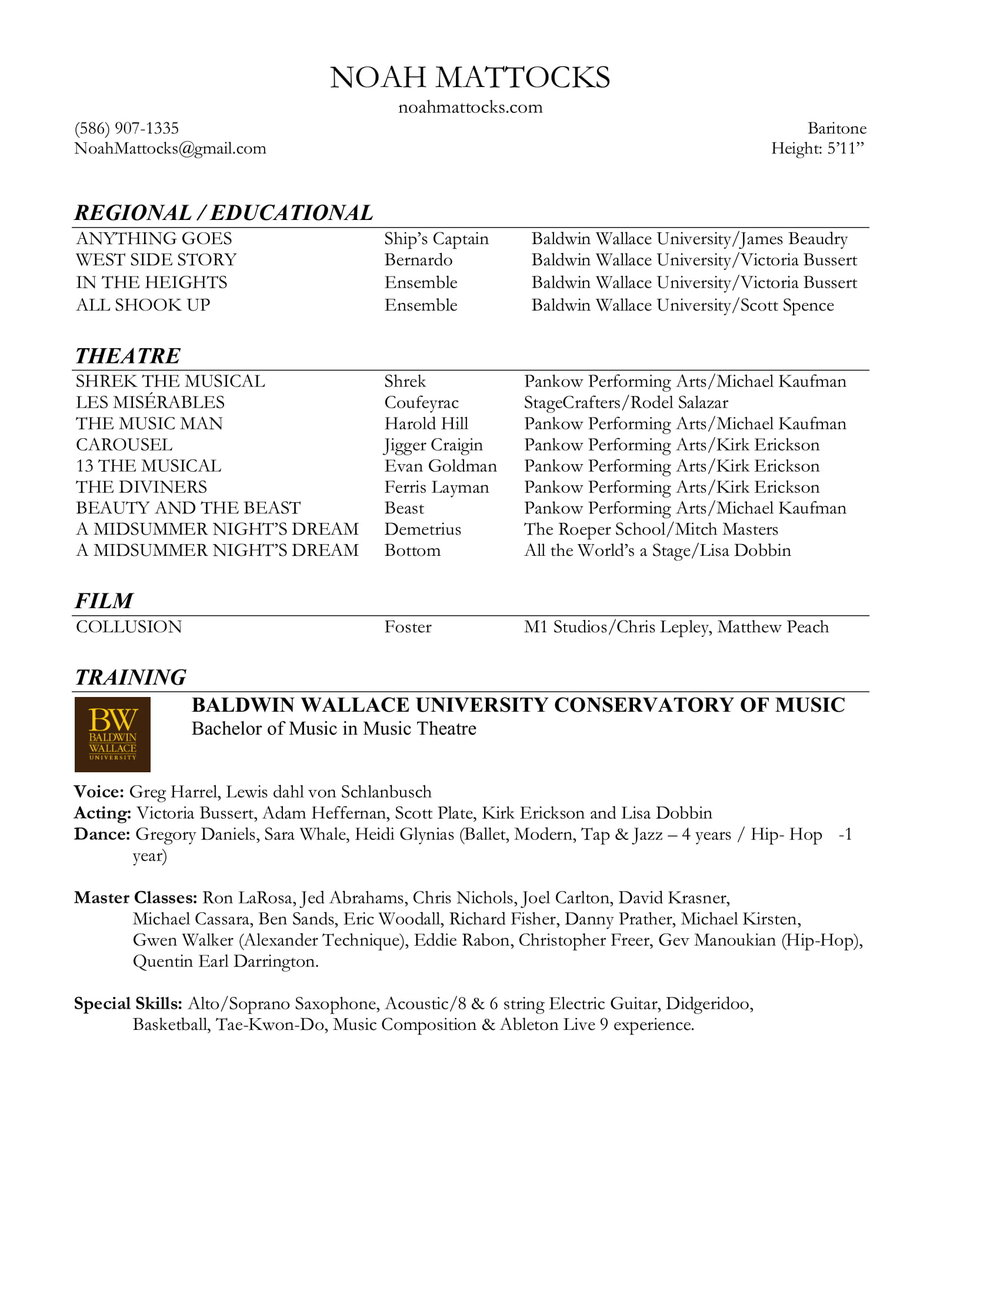 Noah Mattocks new Print Resume-1.jpg